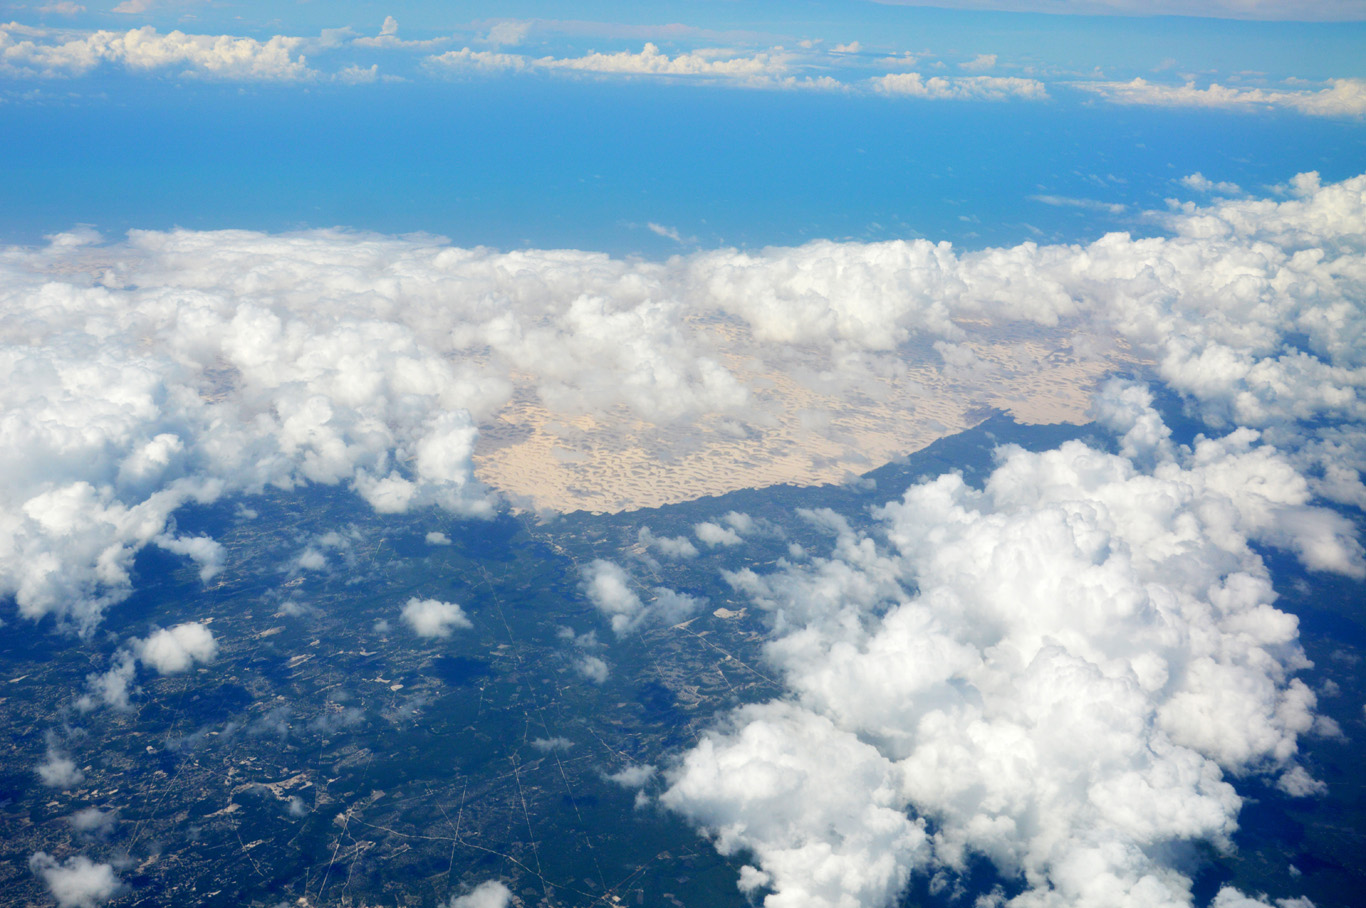 Sea, sand dunes and green rain forest - aerial view